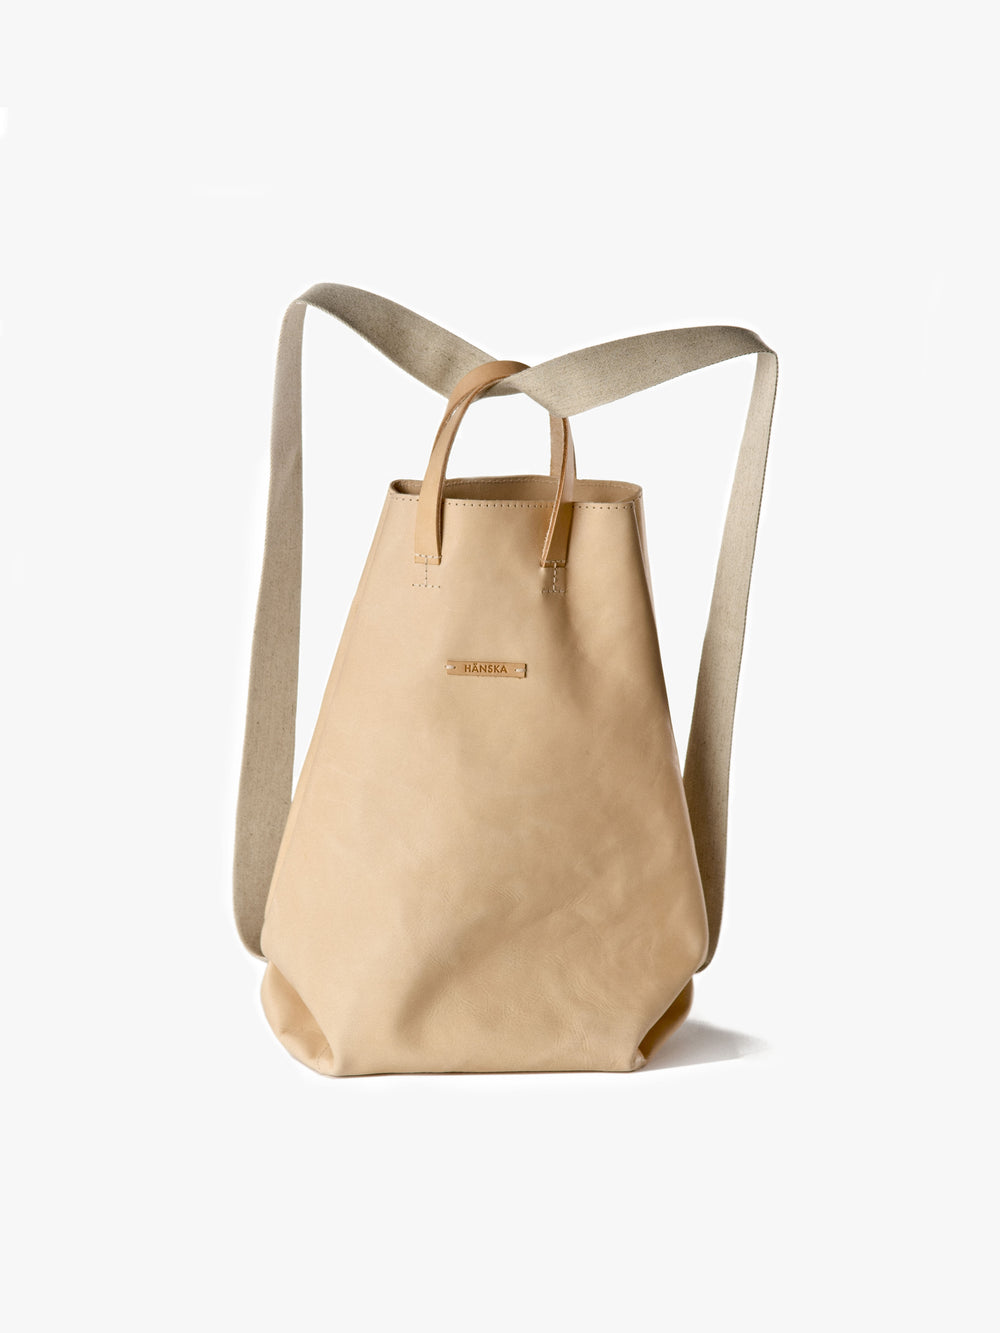 Moire shopper in natural leather handcrafted in Berlin by Haenska